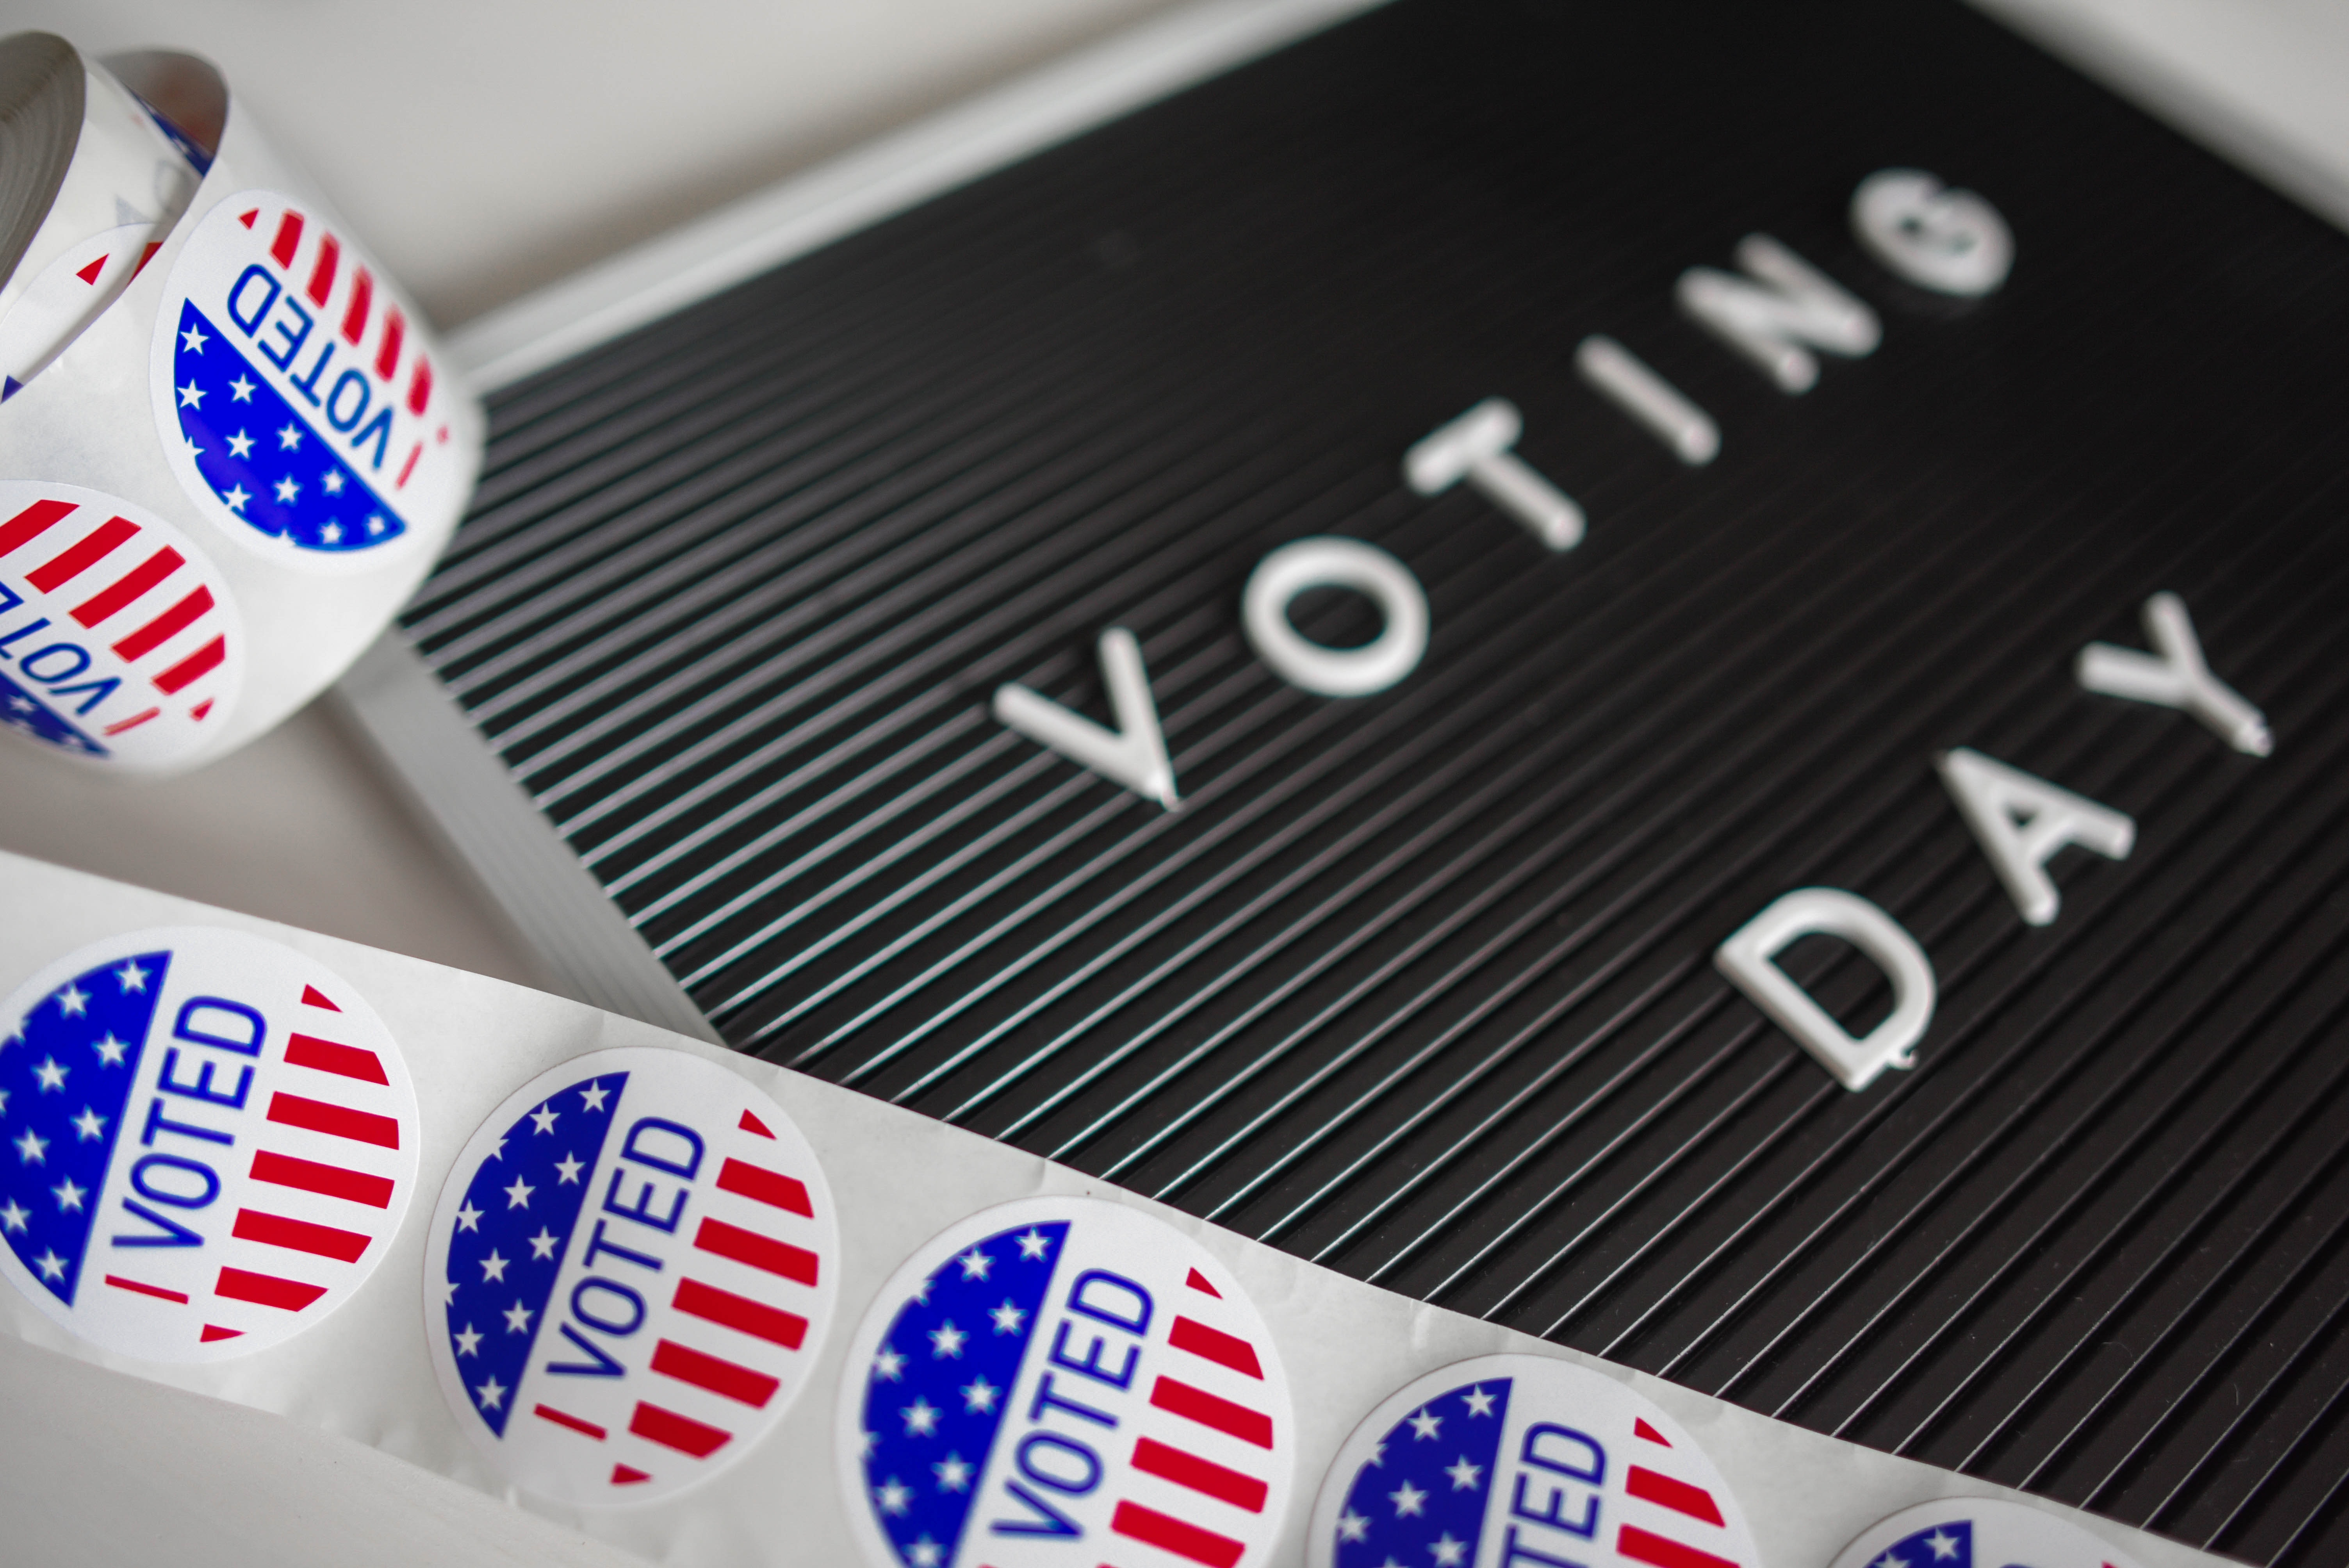 Readying Virginia for Redistricting After a Decade of Election Law Upheaval